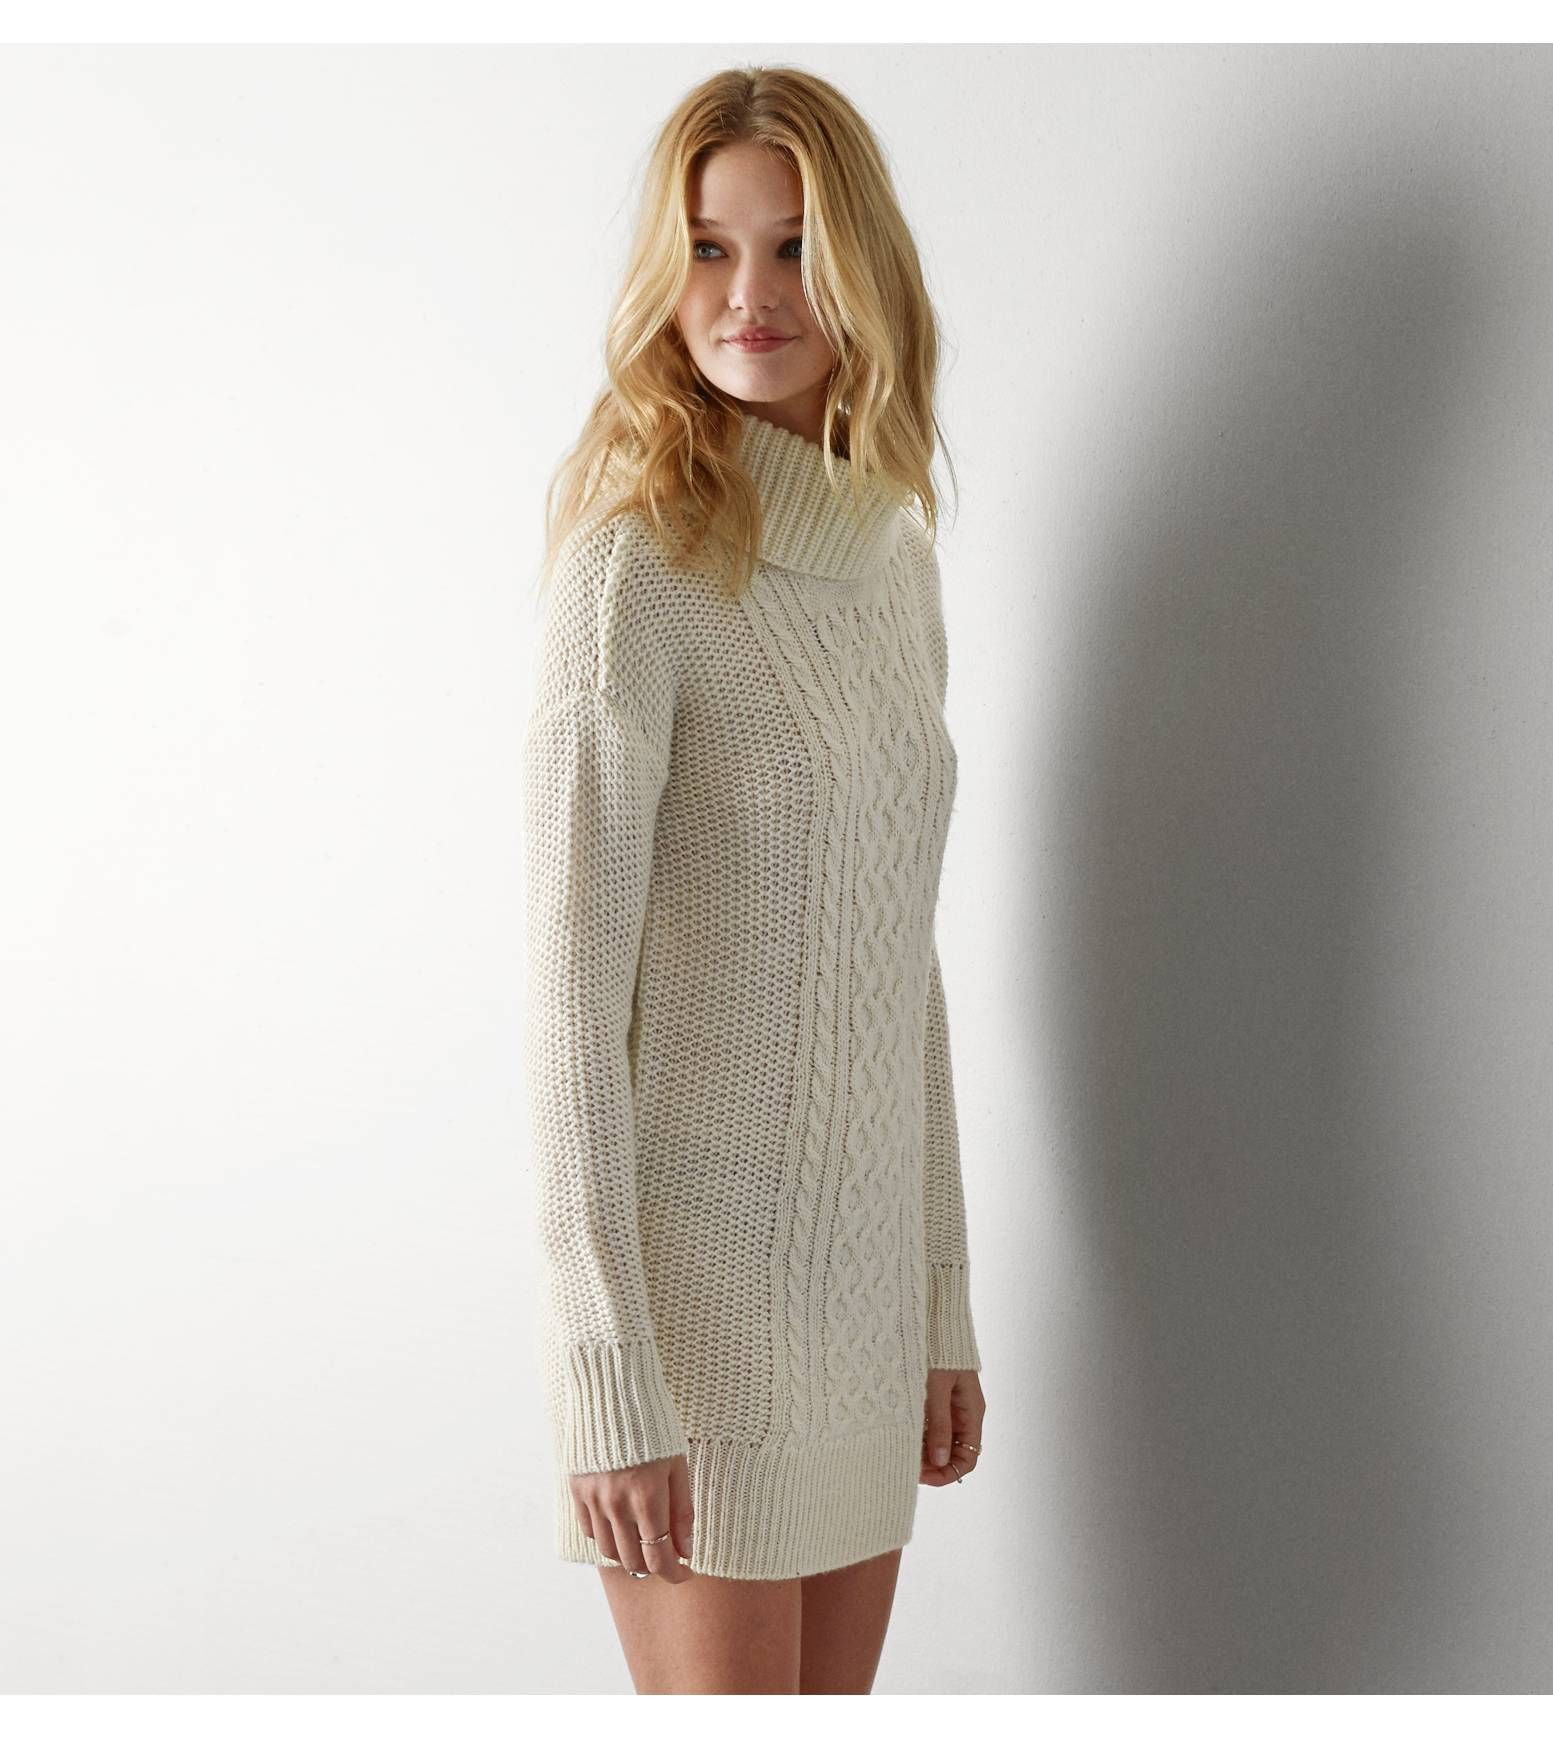 Cream Cowl Neck Sweater Dress Her Sweater